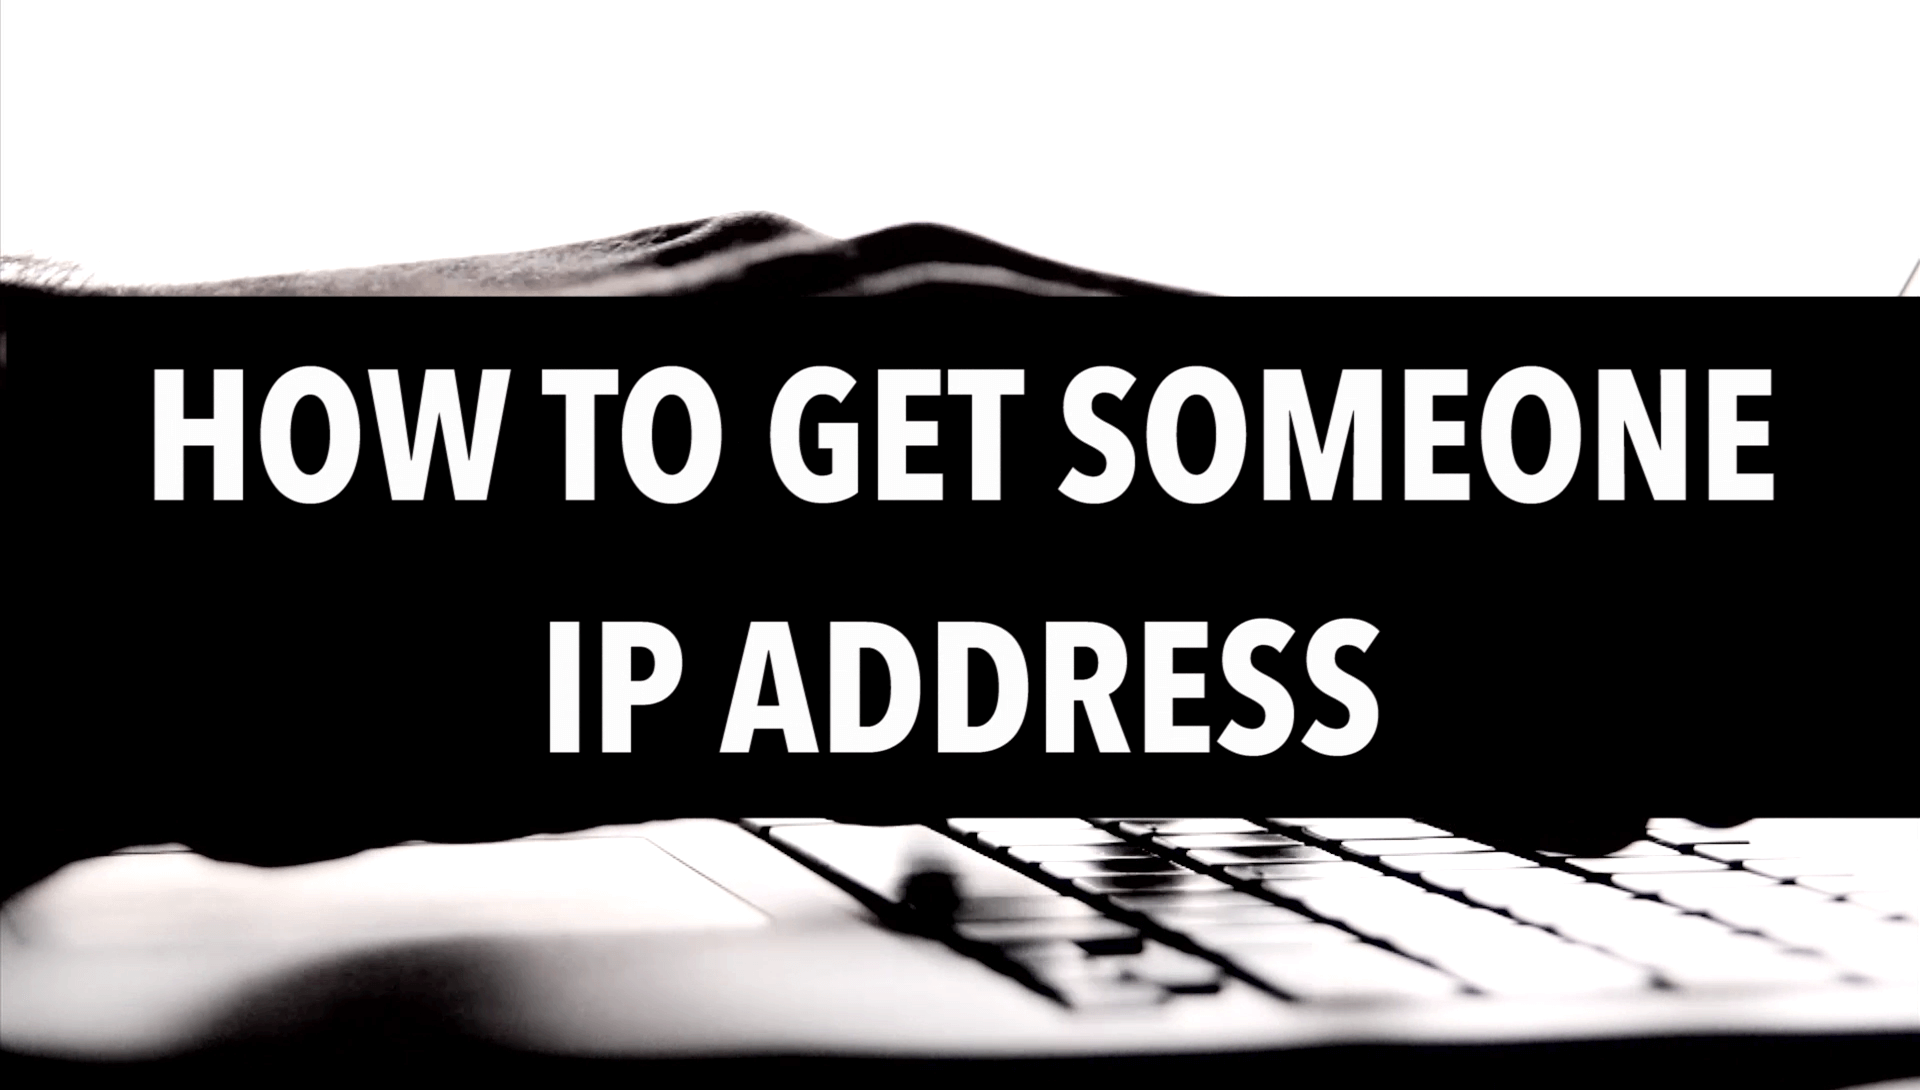 How to Find Anyone Computer and Mobile IP Address in Just Seconds